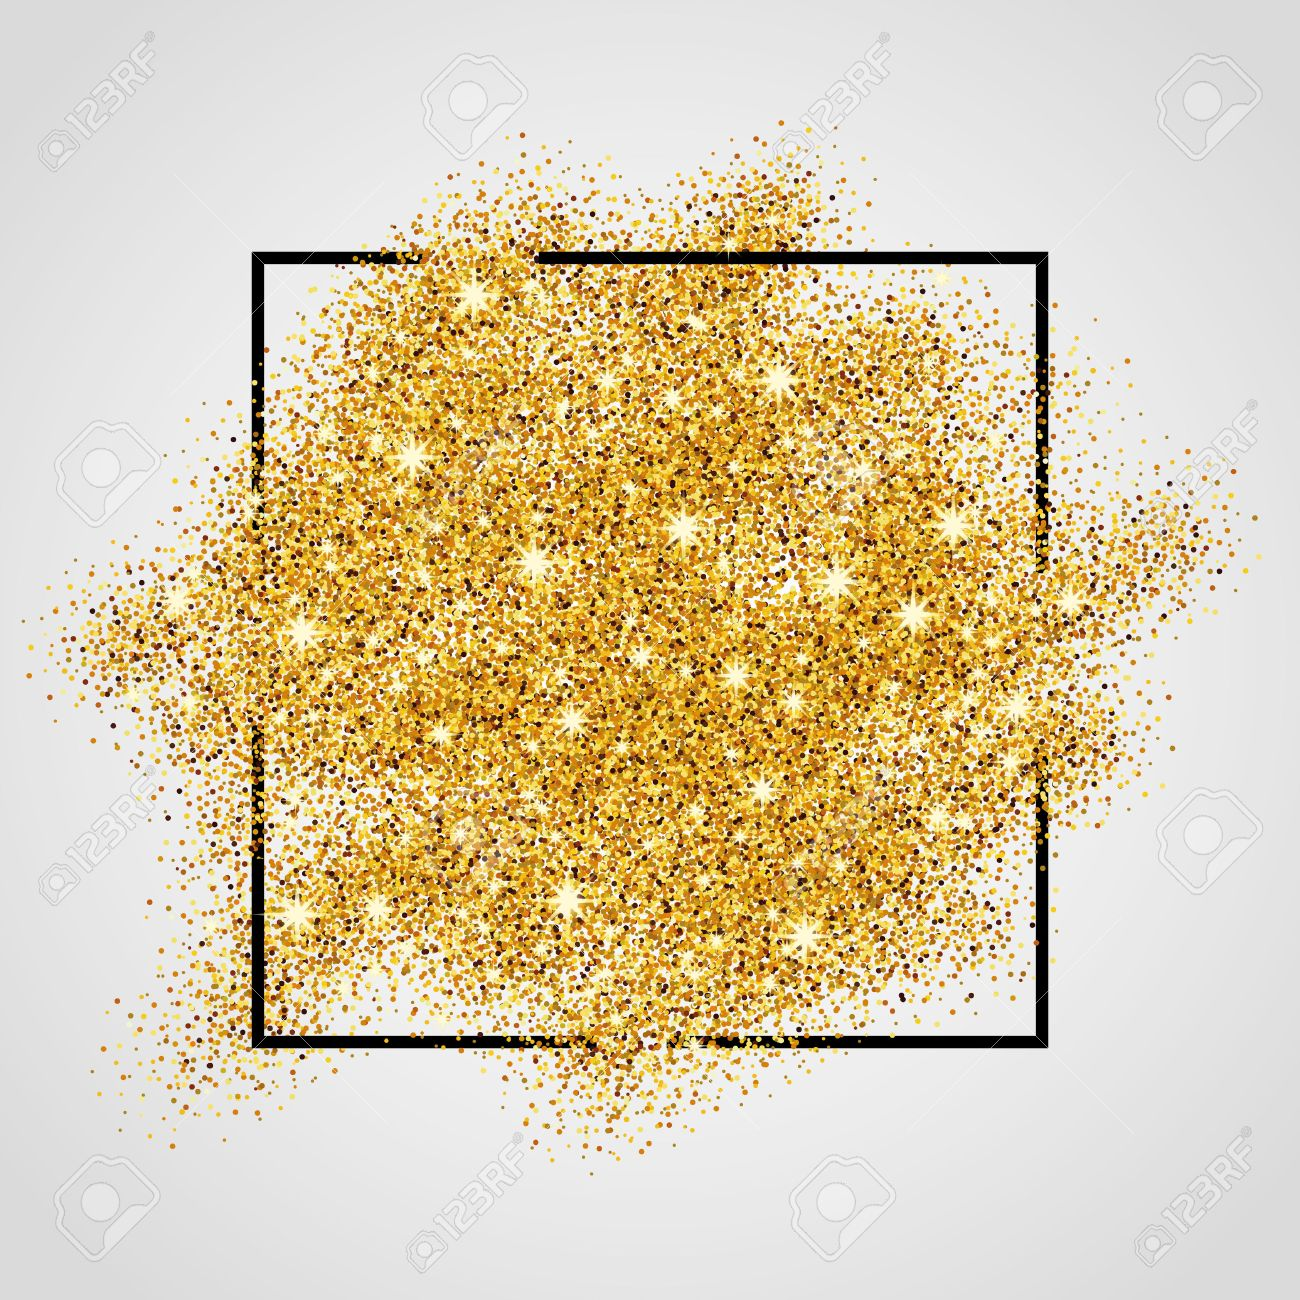 Gold sparkles on white background in frame. Gold glitter background. Gold background for card, vip, exclusive, certificate, gift, luxury, privilege, voucher, store, present, shopping. - 52579343